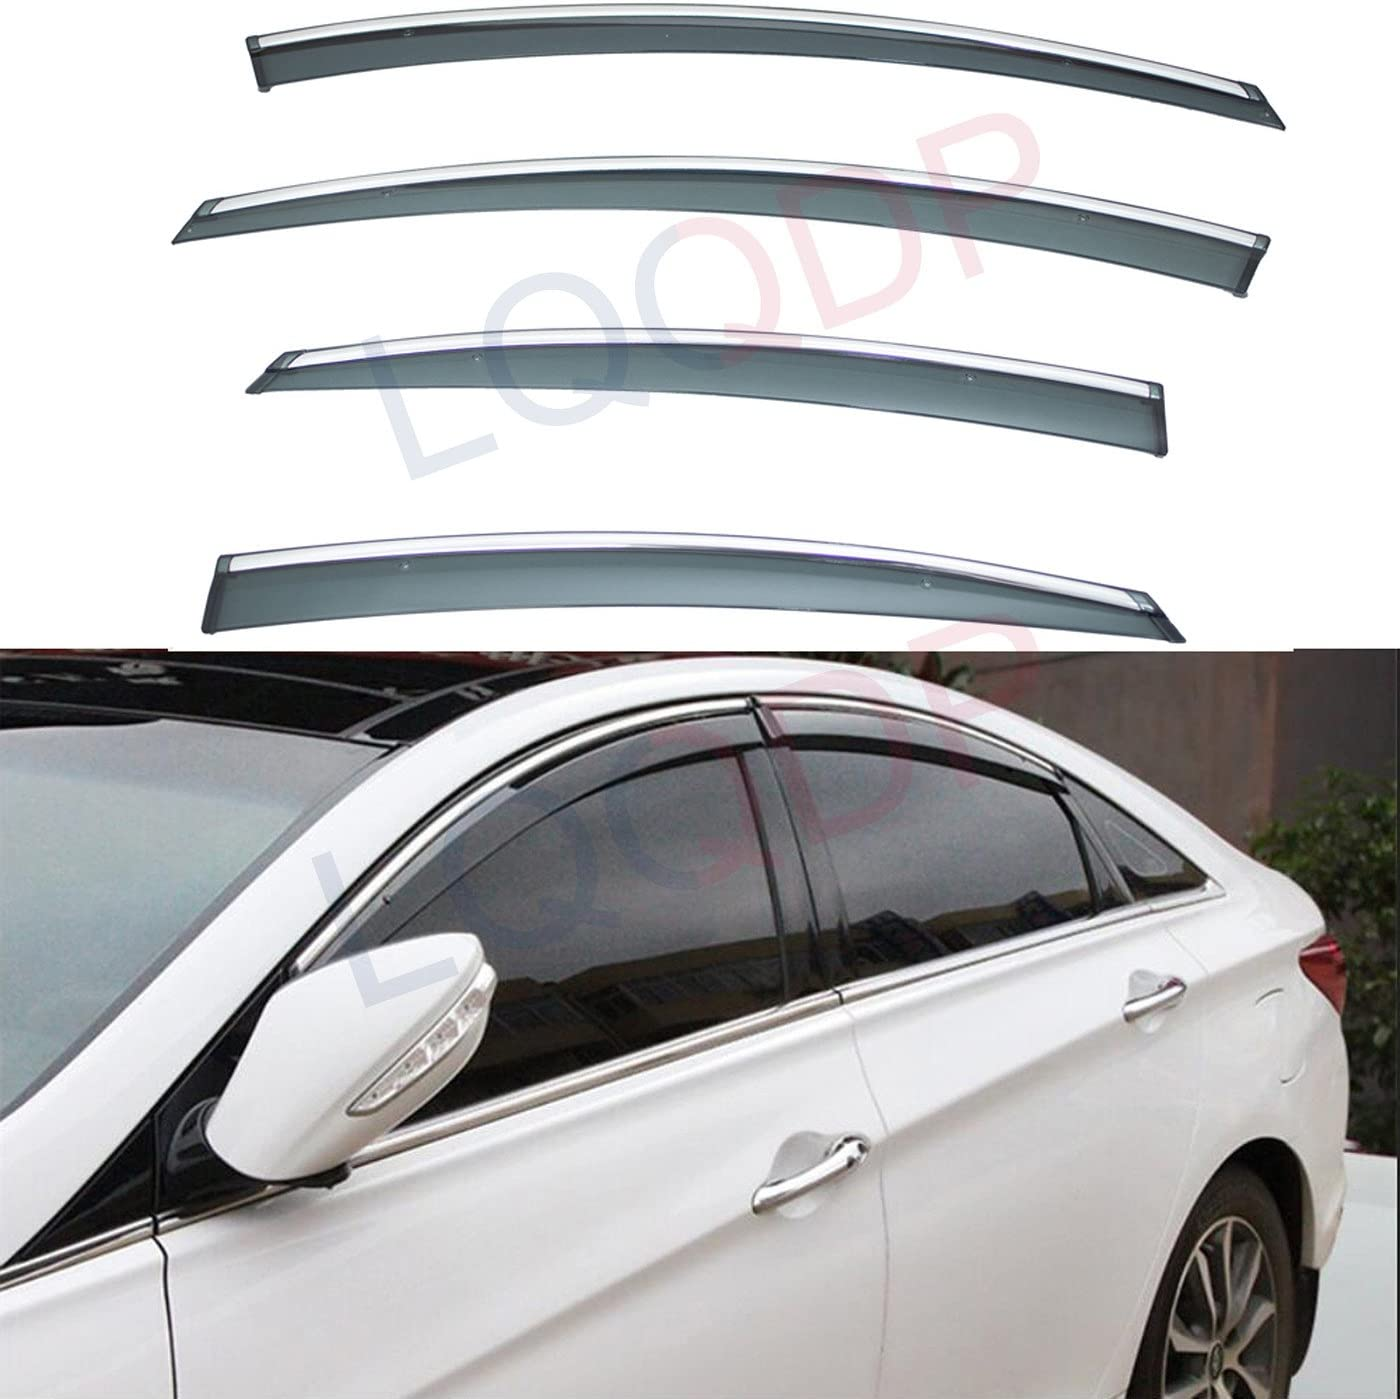 LQQDP 4pcs Smoke Max 59% OFF Tint With Chrome Cli On Outside Tape Mount Trim Ranking TOP6